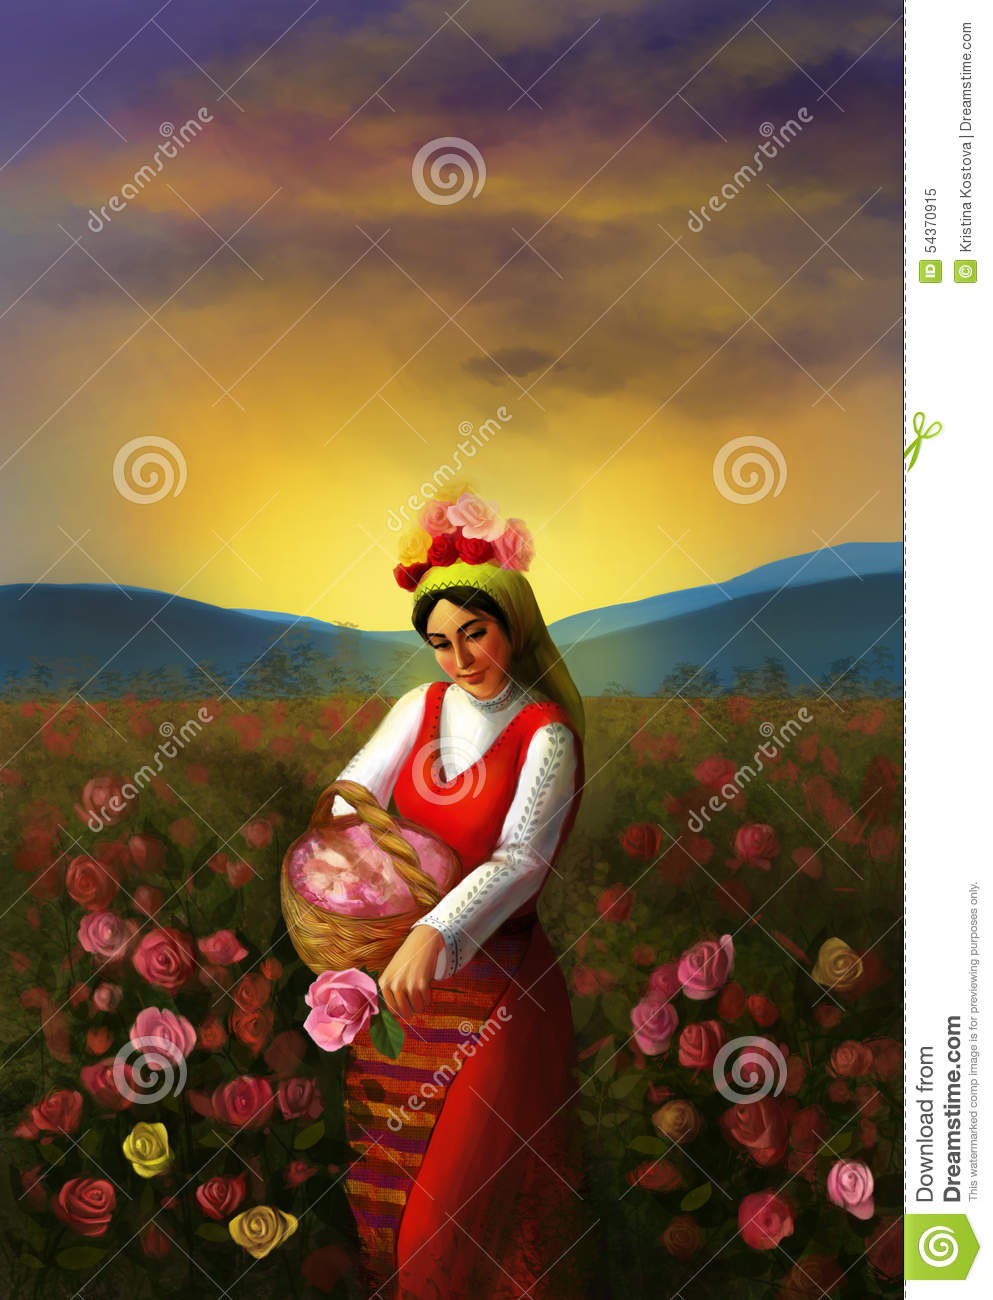 Illustration of a young Bulgarian girl wearing traditional clothing and piking up roses